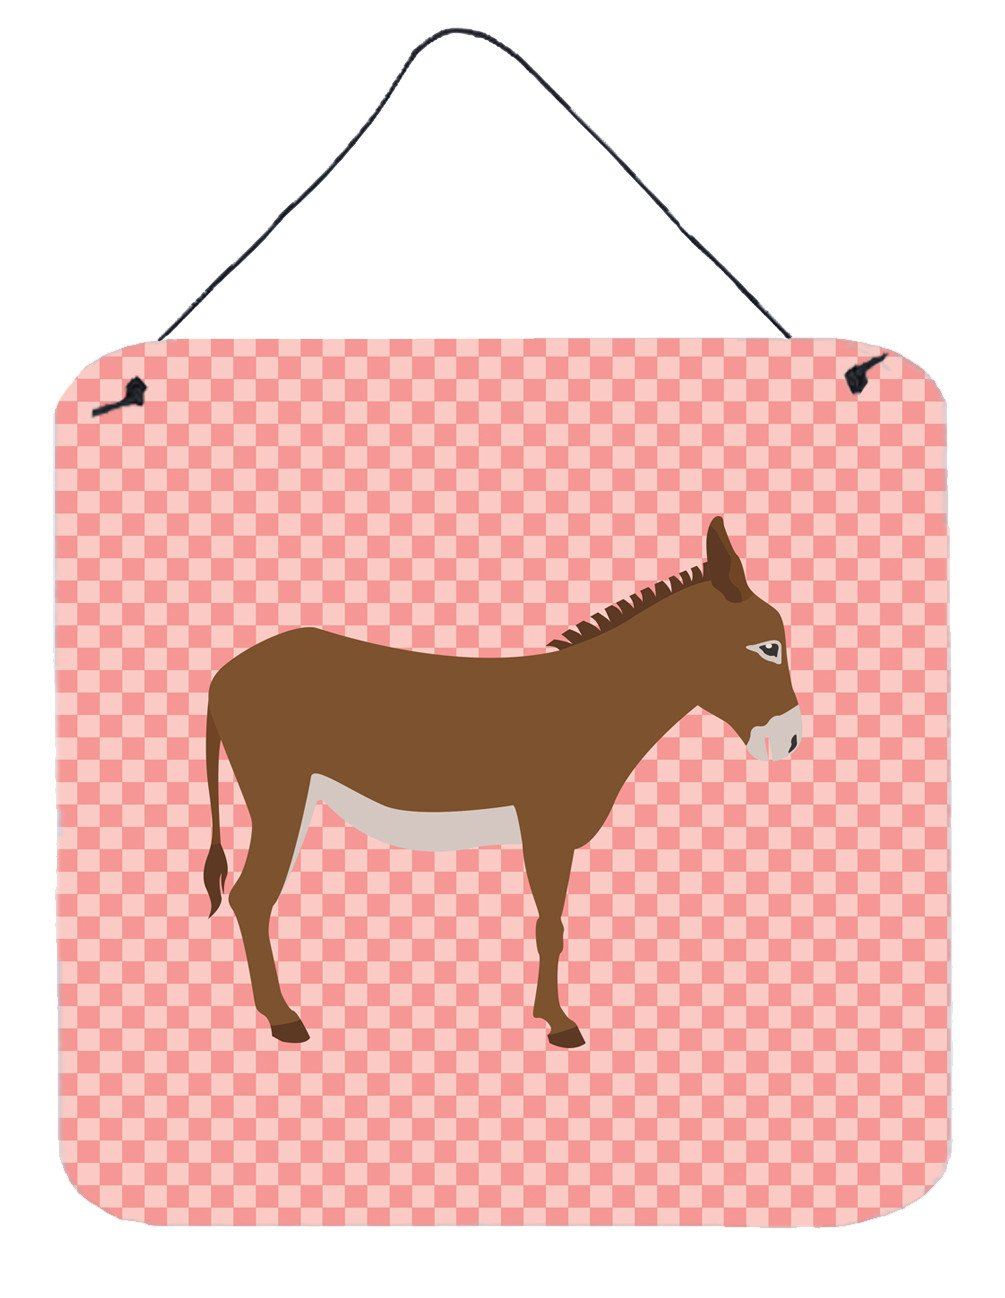 Cotentin Donkey Pink Check Wall or Door Hanging Prints BB7849DS66 by Caroline's Treasures